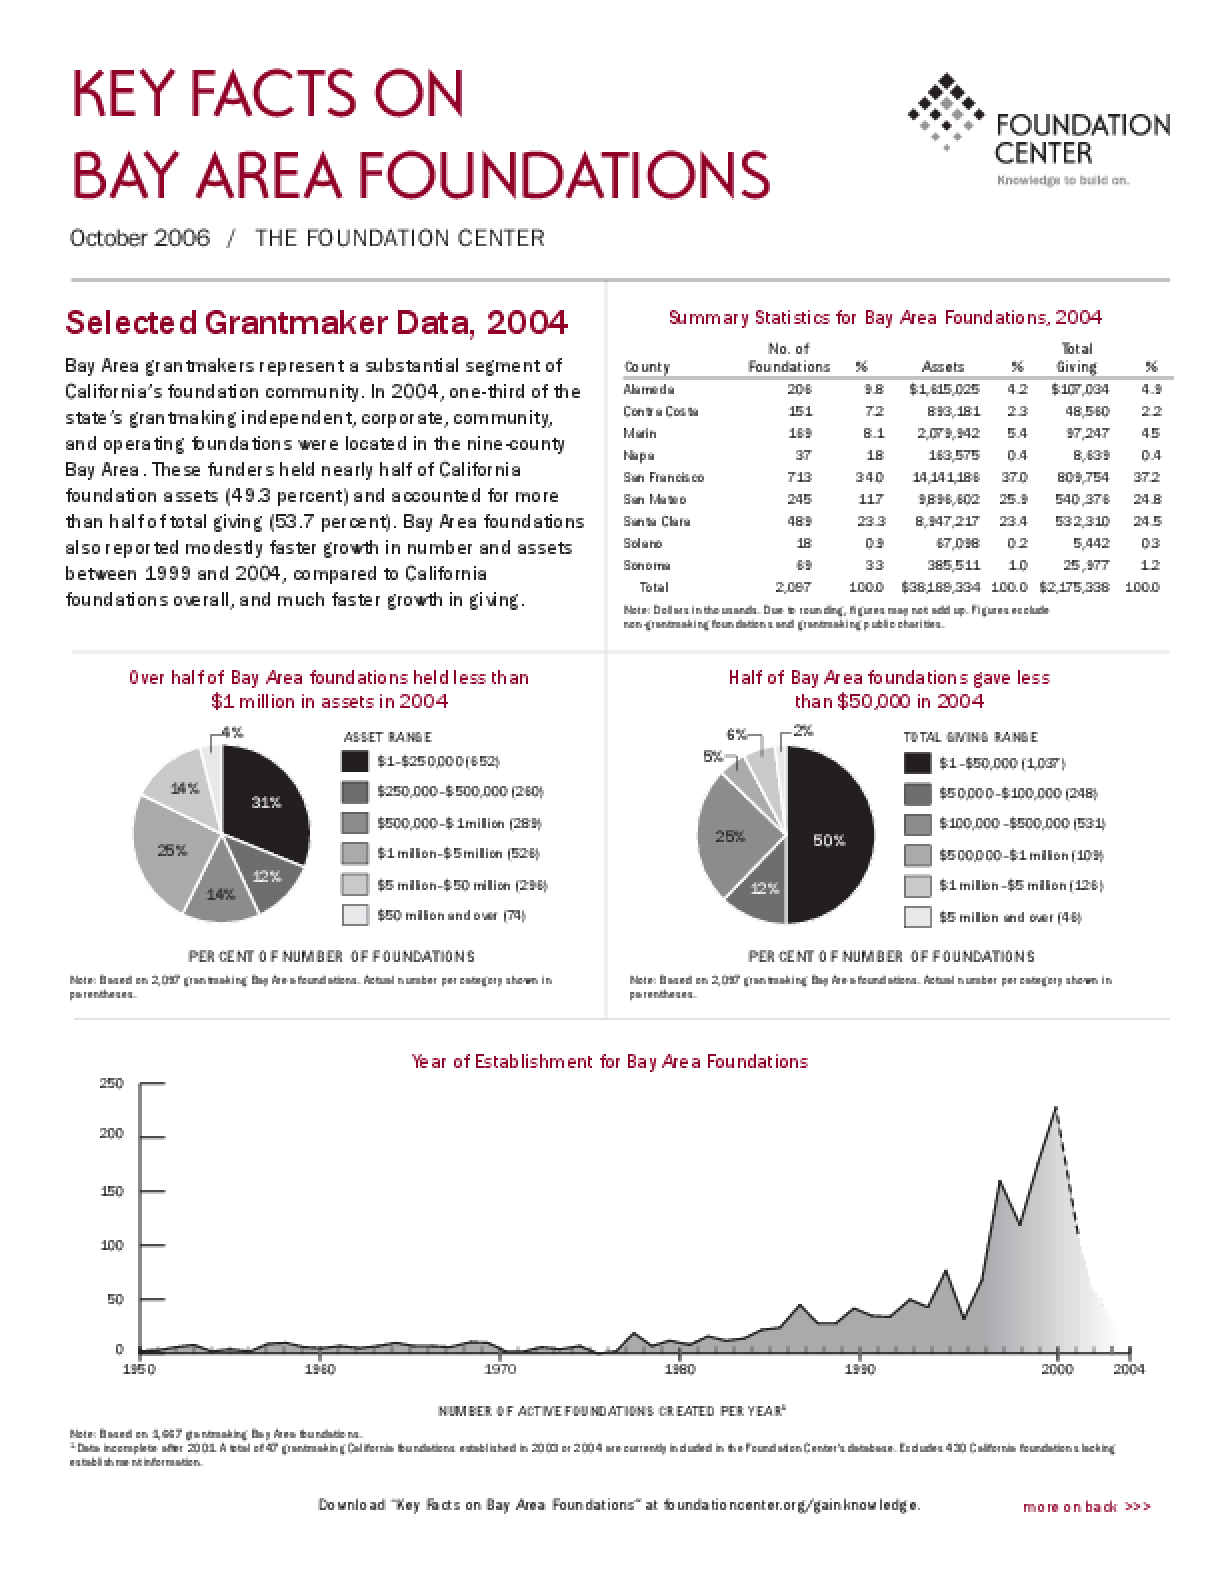 Key Facts on Bay Area Foundations 2006